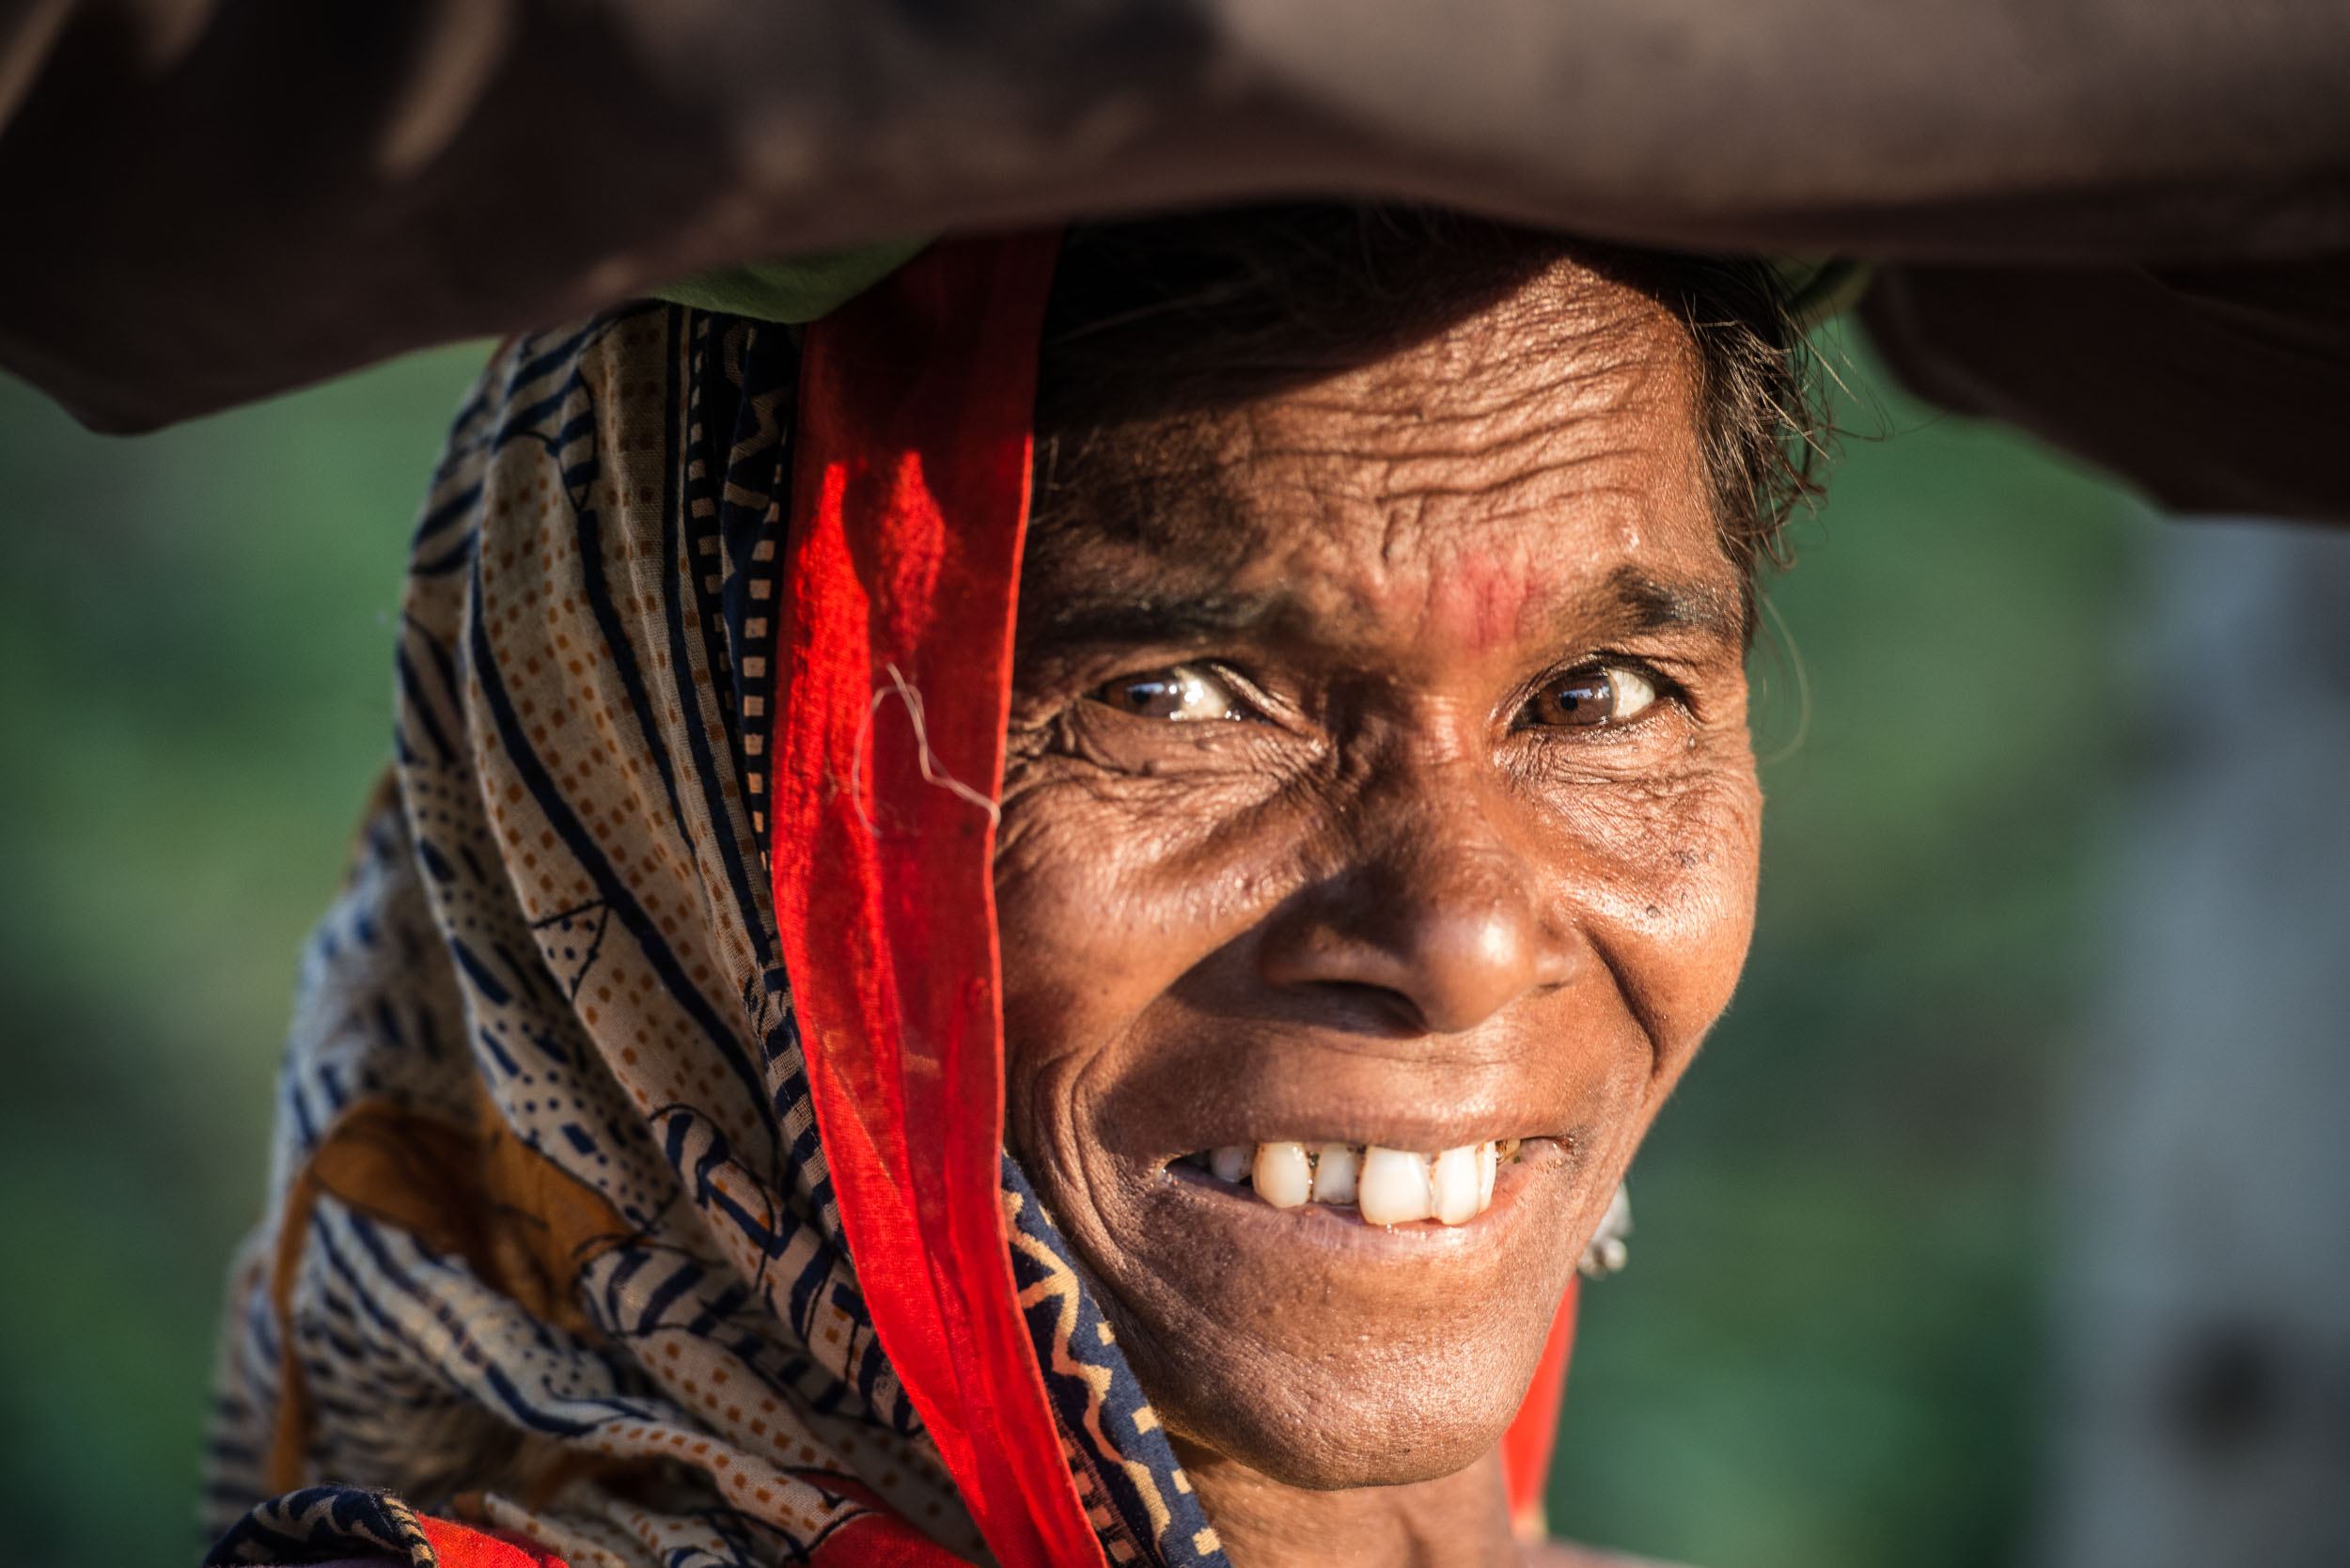 Bangladesh Smiling tea picker - Travel - Photo credit Nicola Bailey.jpg